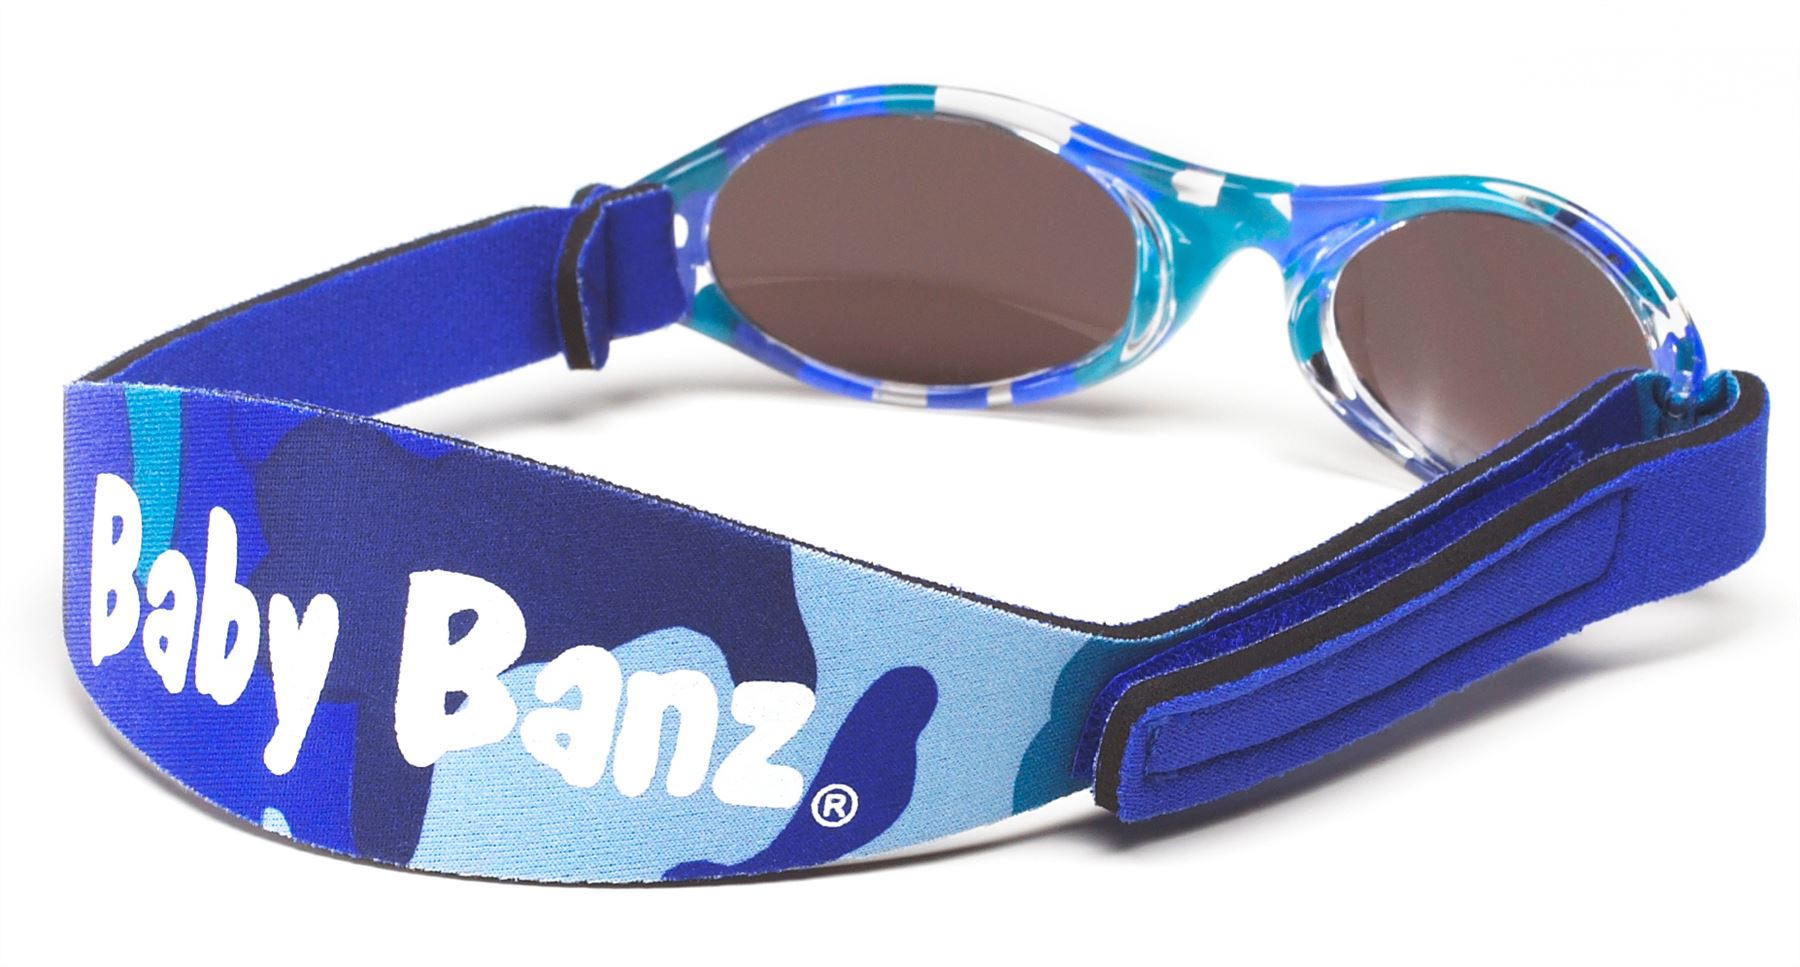 ae317e5385ae Baby Banz Sunglasses Nordic Camo Infants 0-2 Years 100 UV Protection EUC.  About this product. Stock photo  Picture 1 of 2  Picture 2 of 2